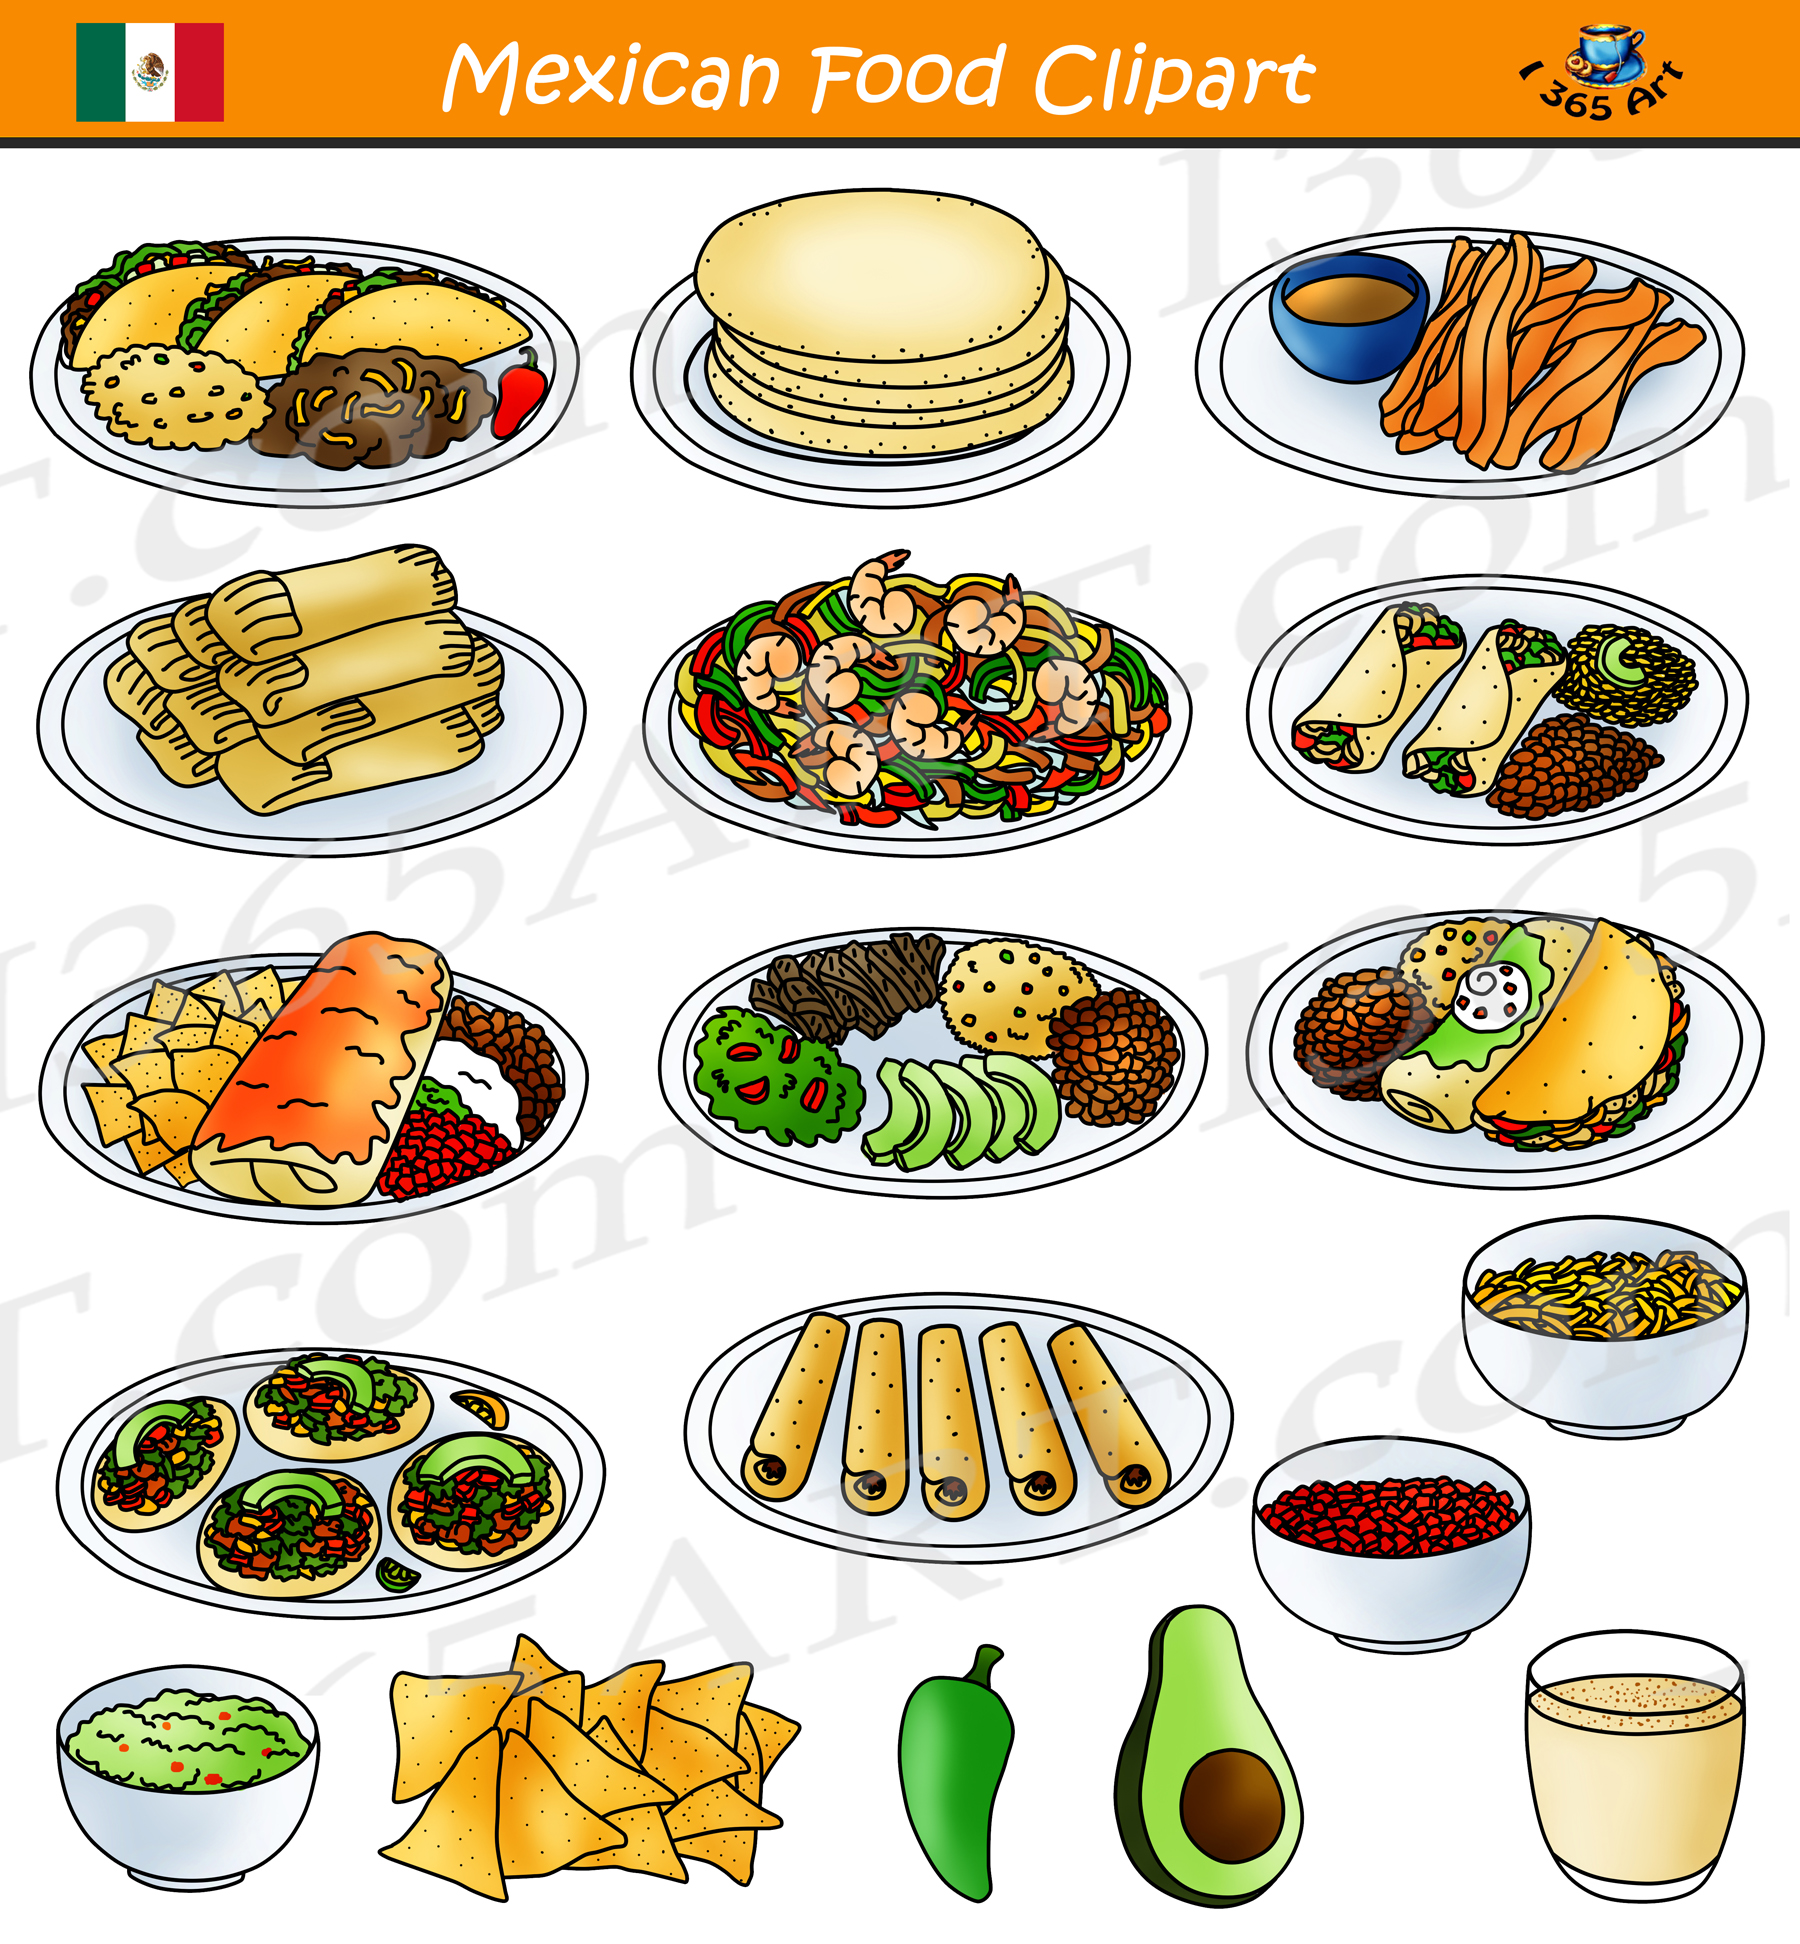 Mexican Food Clipart